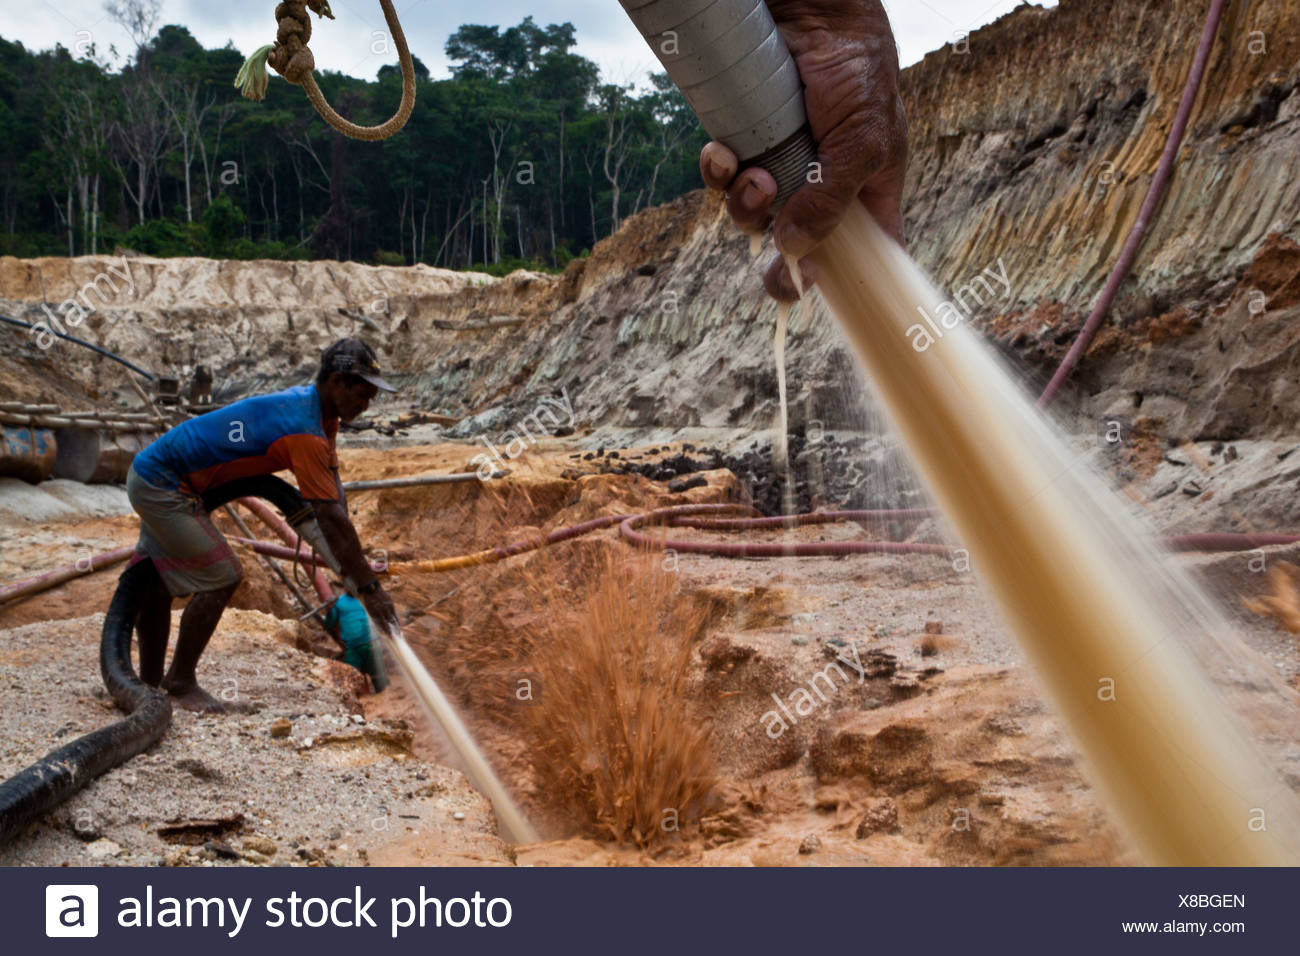 Gold mining Amazon rain forest Hydraulic mining known as chupadeira high-pressure jets of water to dislodge rock material - Stock Image